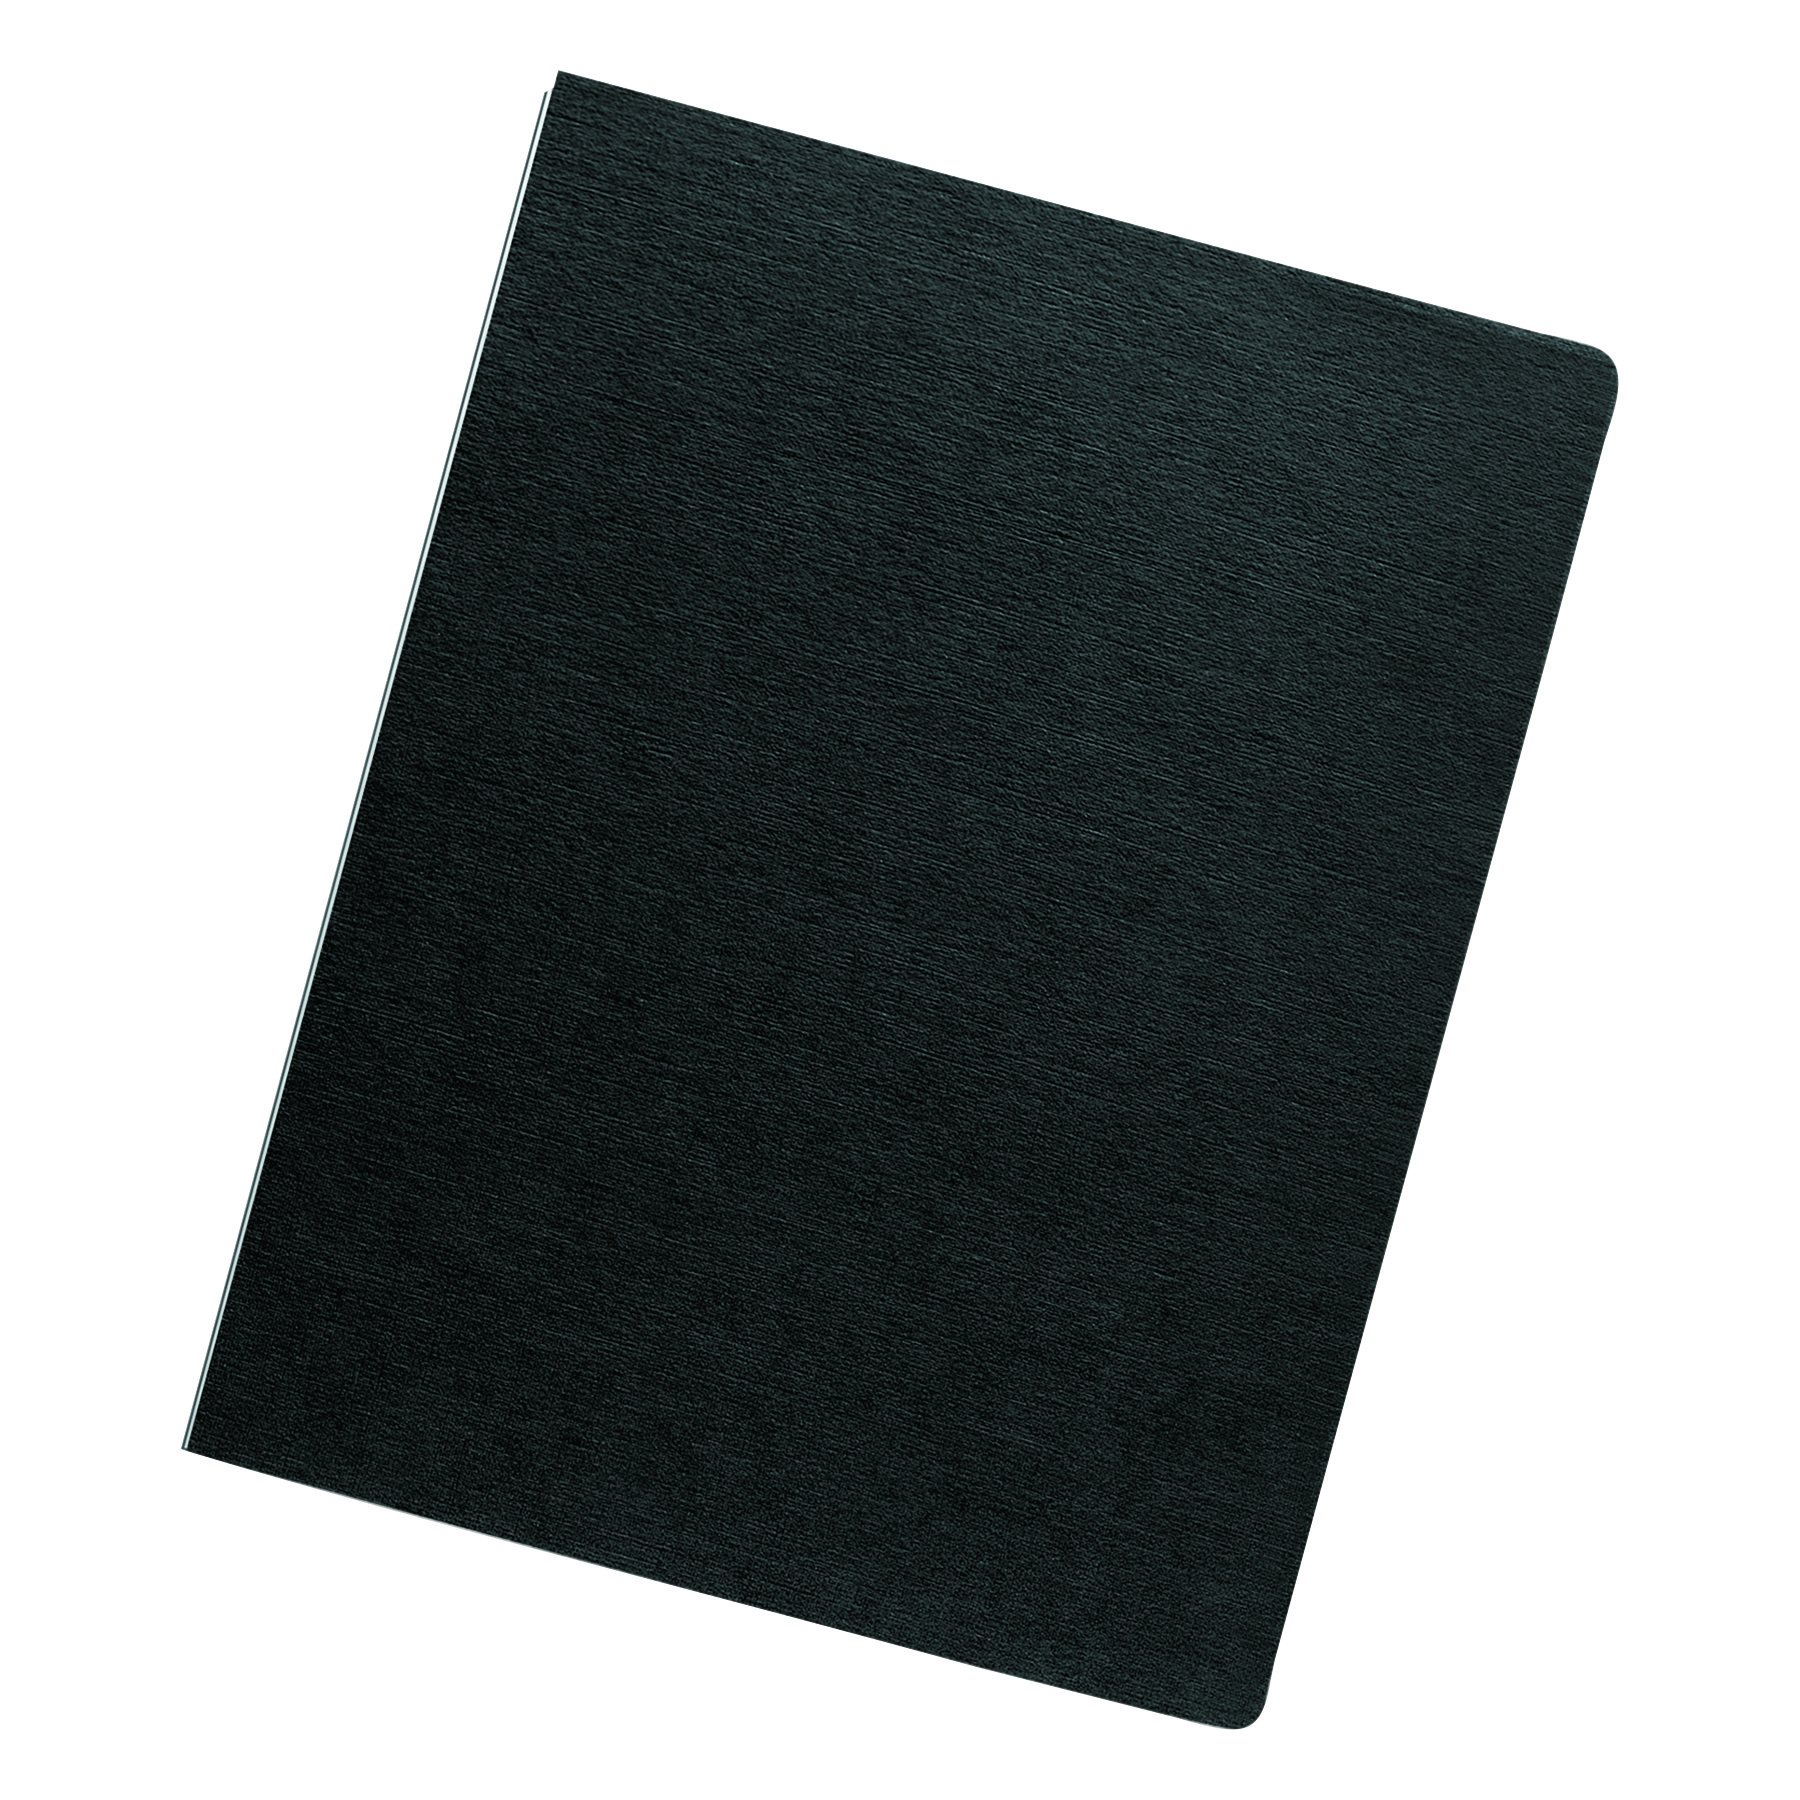 Fellowes 52115 Linen Texture Binding System Covers, 11-1/4 x 8-3/4, Black (Pack of 200) by Fellowes (Image #2)